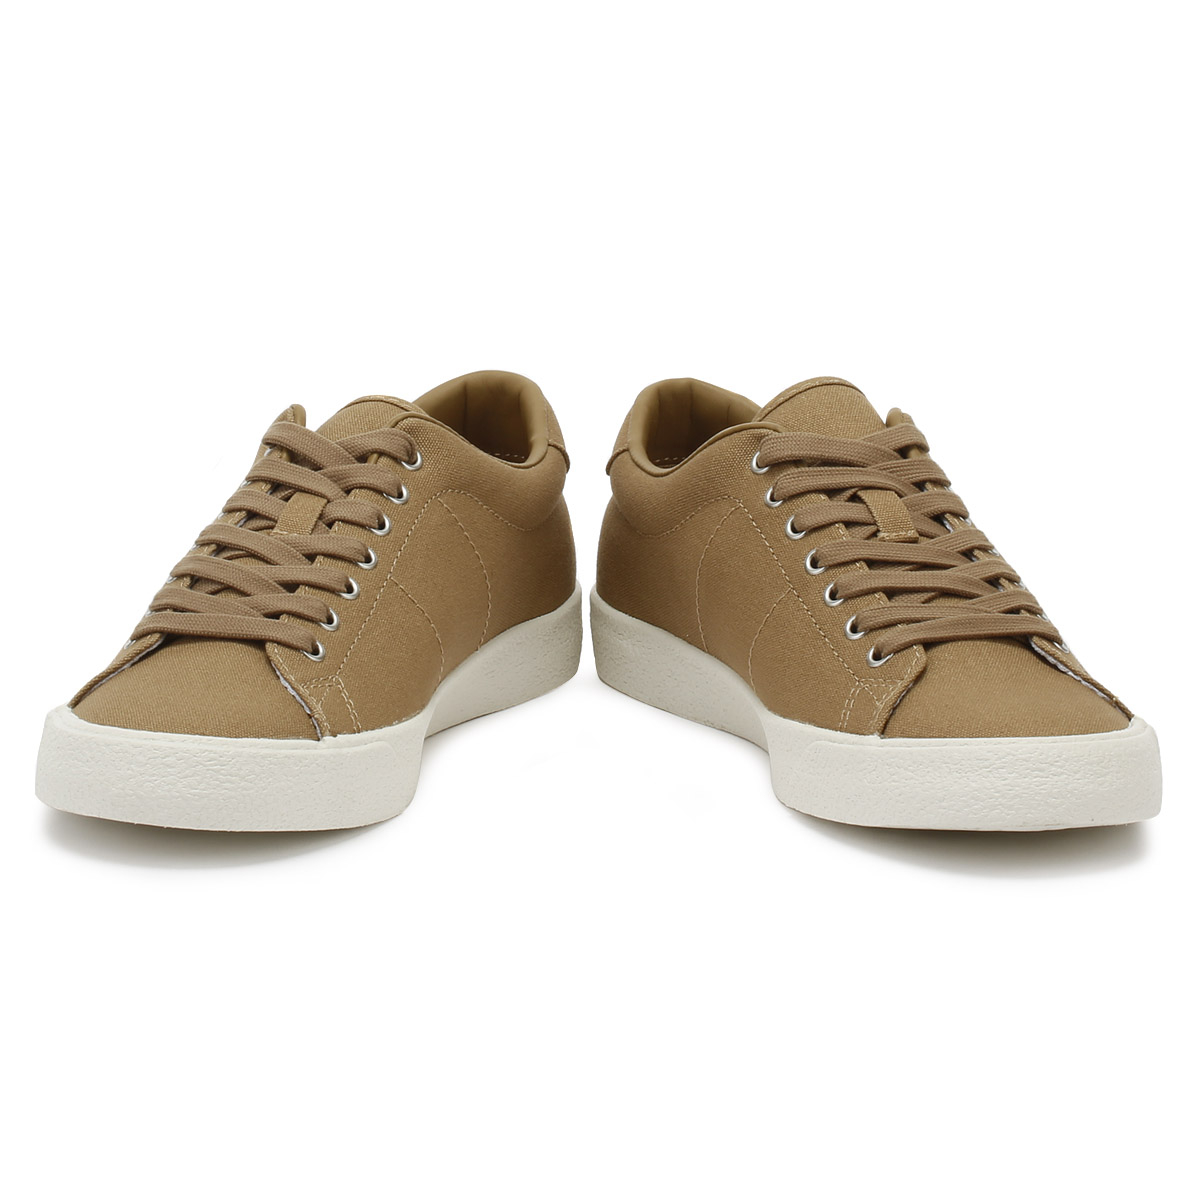 FROT Perry Braun  Uomo Trainers Almond Braun Perry Underspin Canvas Sport Casual Schuhes 3d30e6